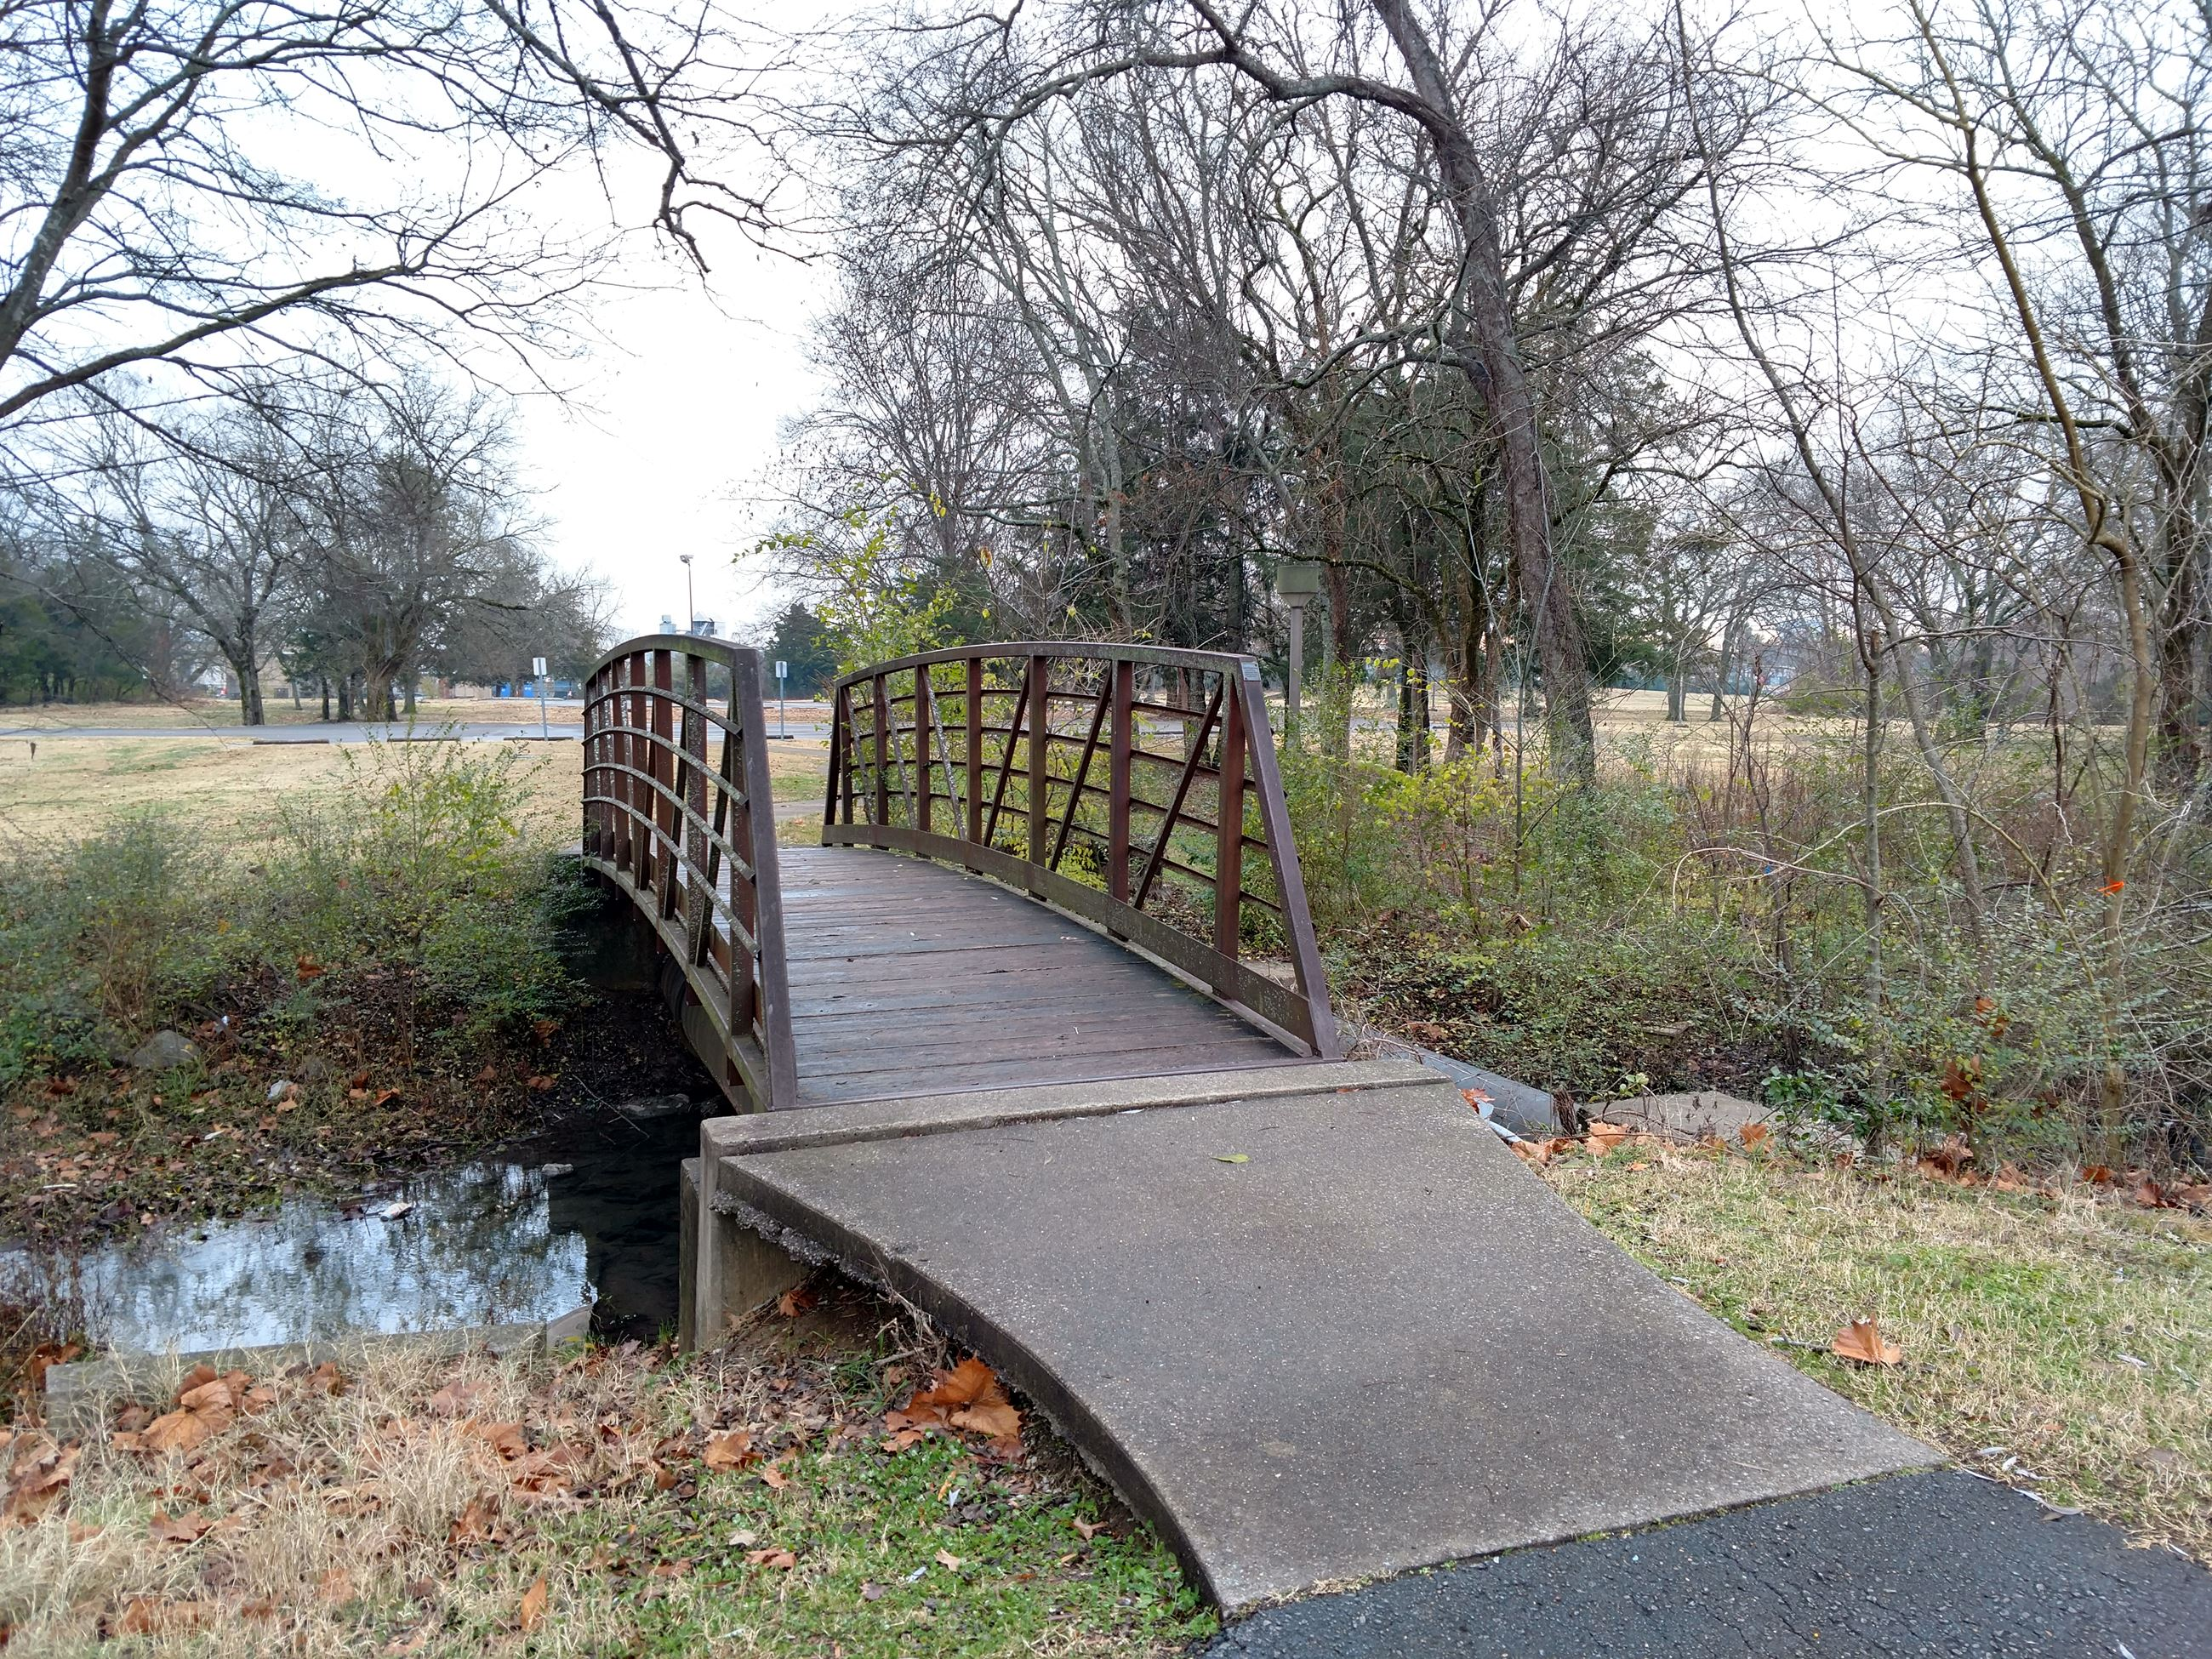 Small footbridge with metal railings over vegetation-bordered creek with water. Late fall.